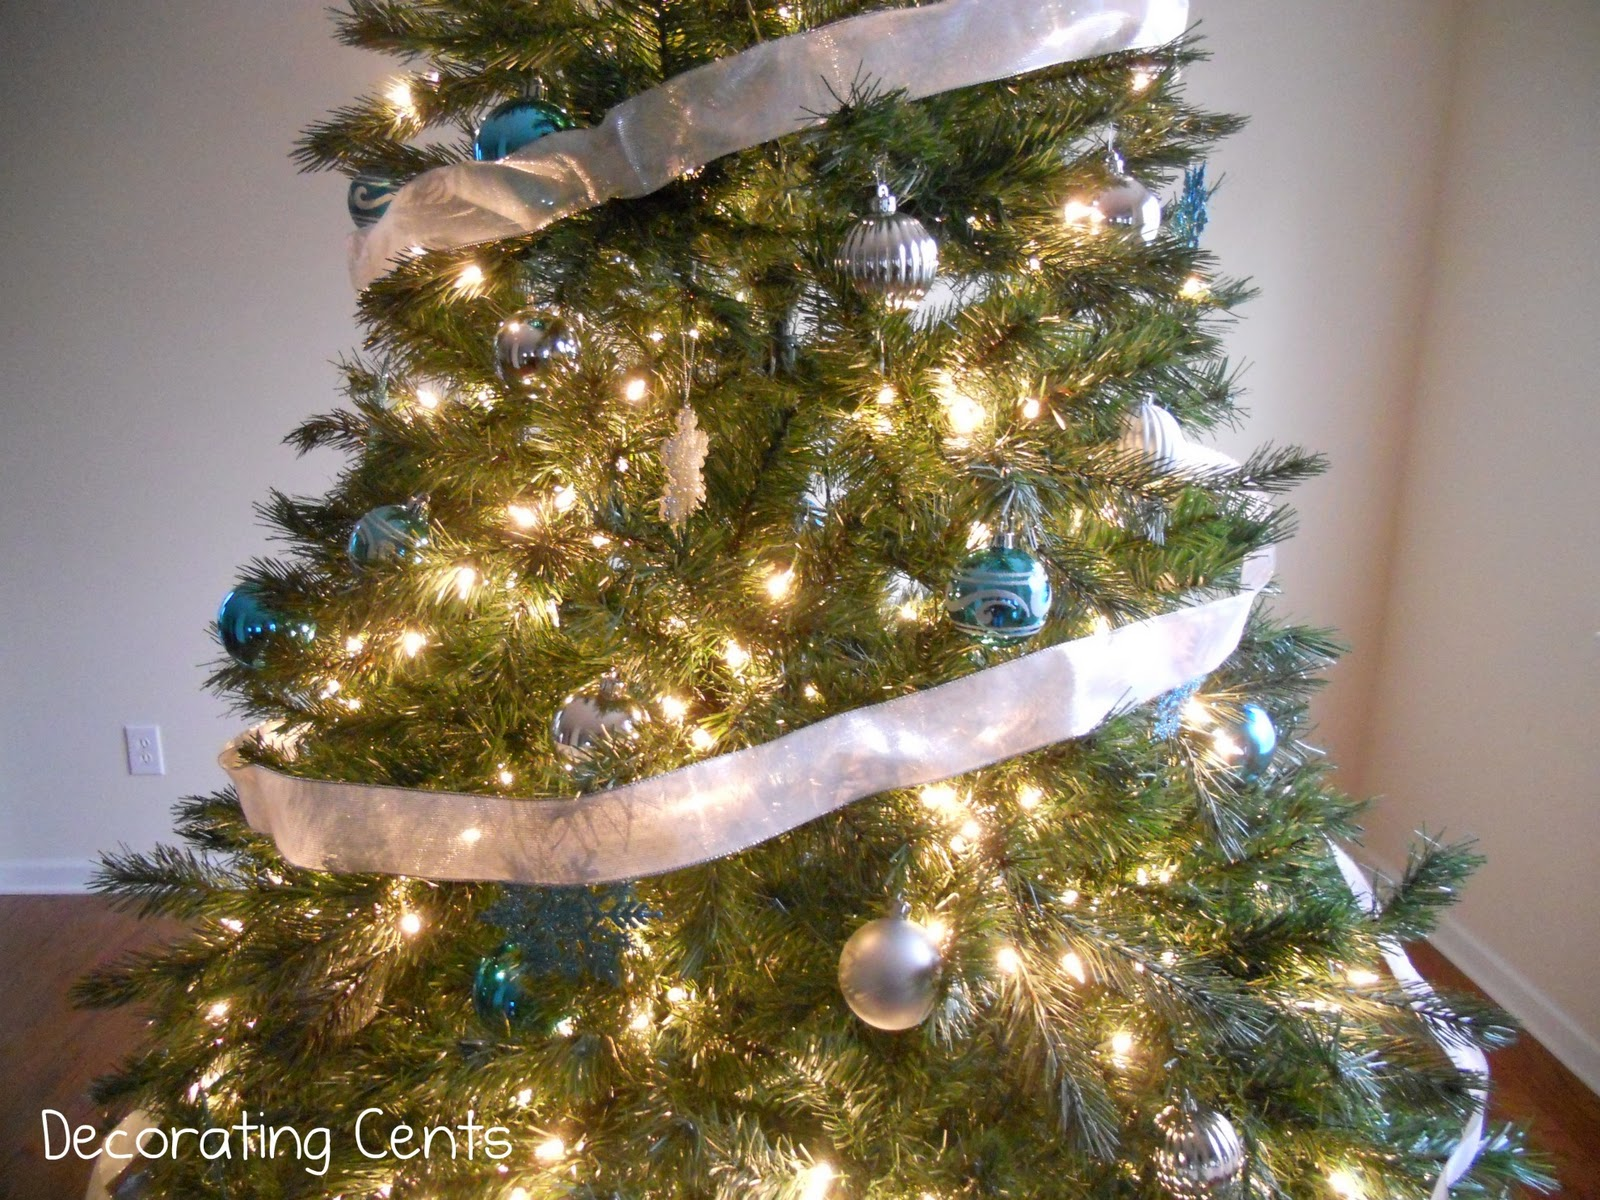 Decorating Cents Blue And Silver Christmas Tree